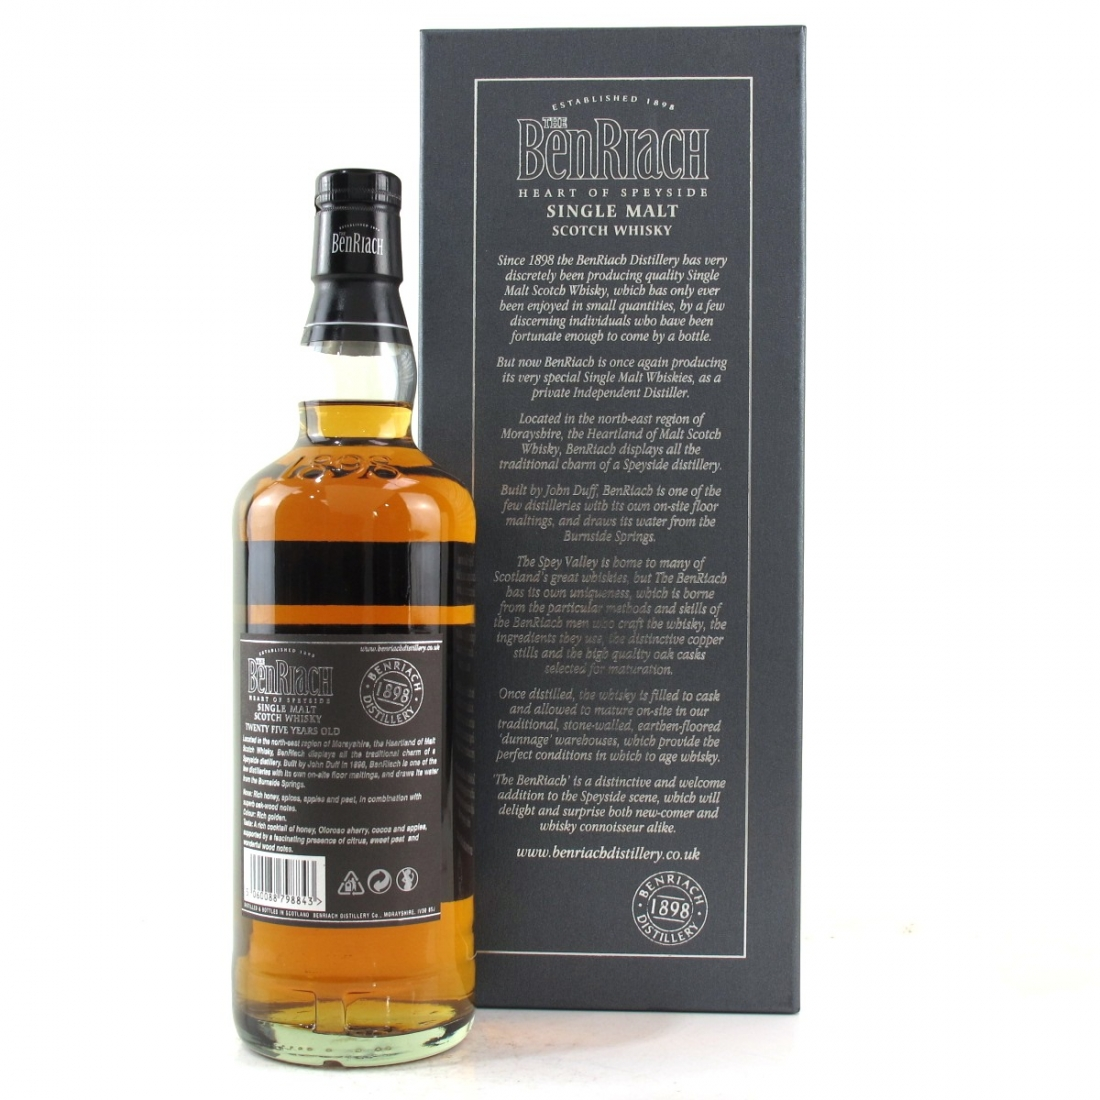 Benriach 25 Year Old